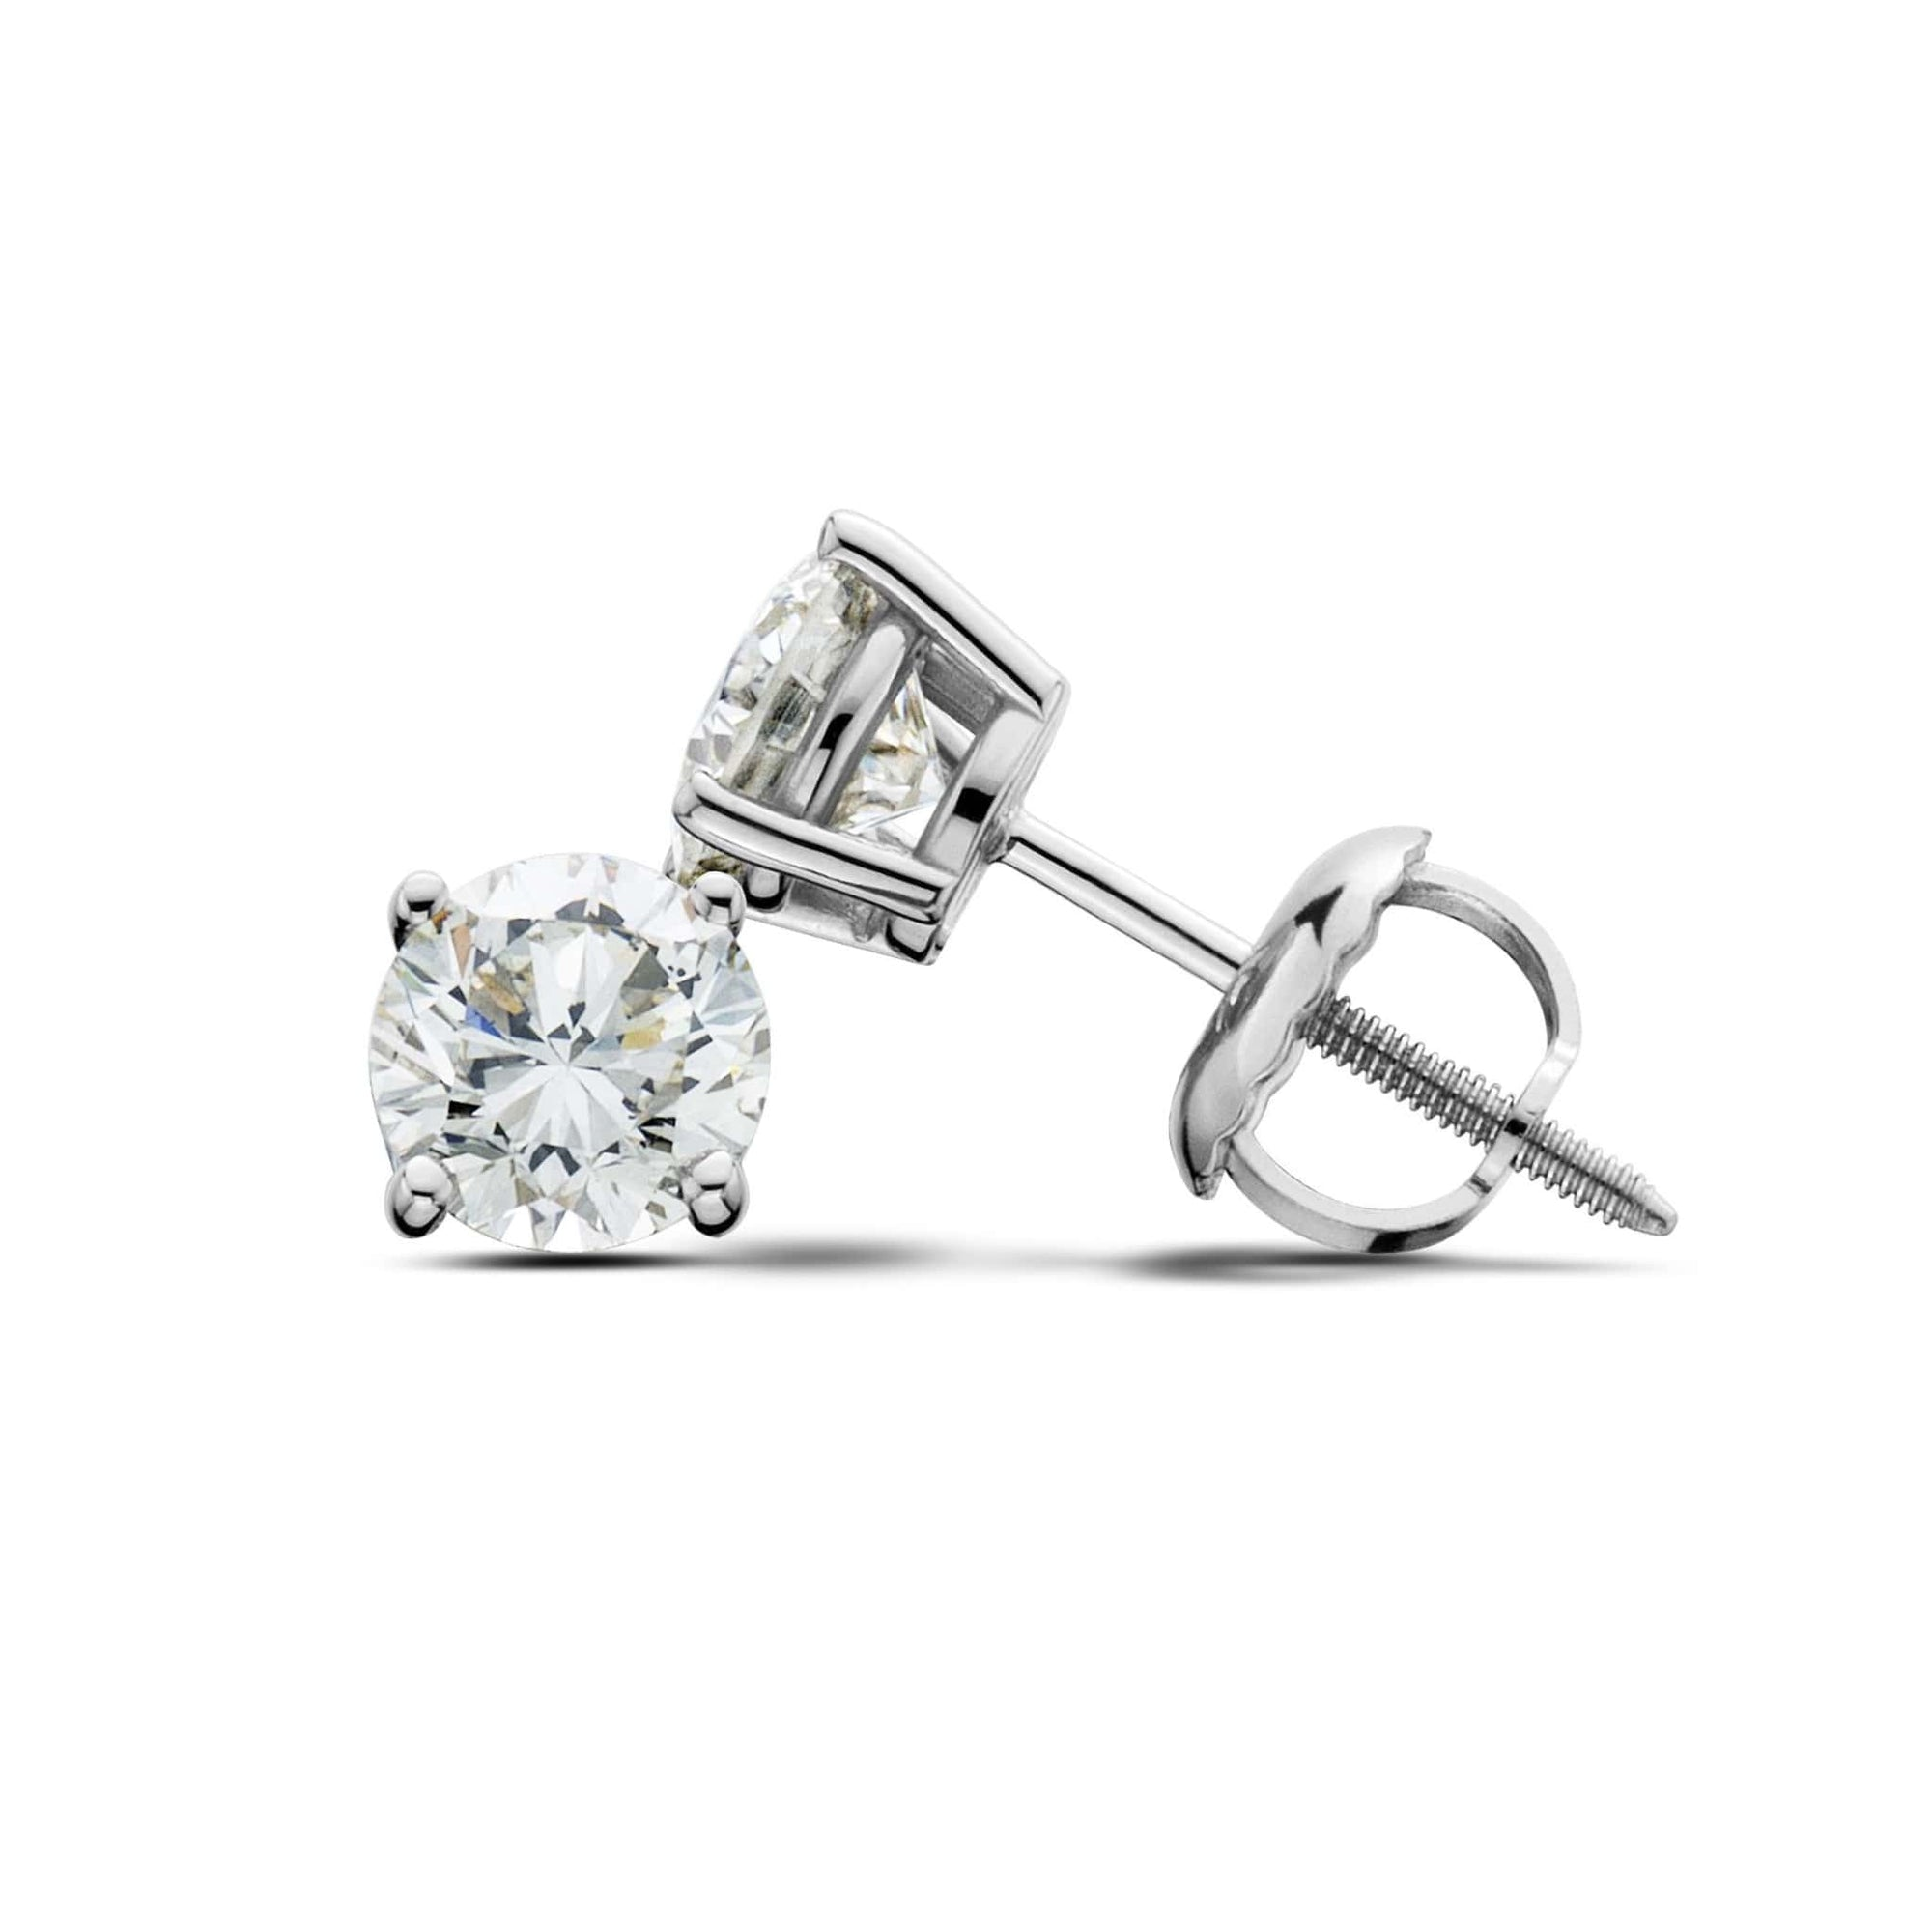 14K White Gold Diamond Stud Earrings (0.80 CT. TW.) at Arman's Jewellers